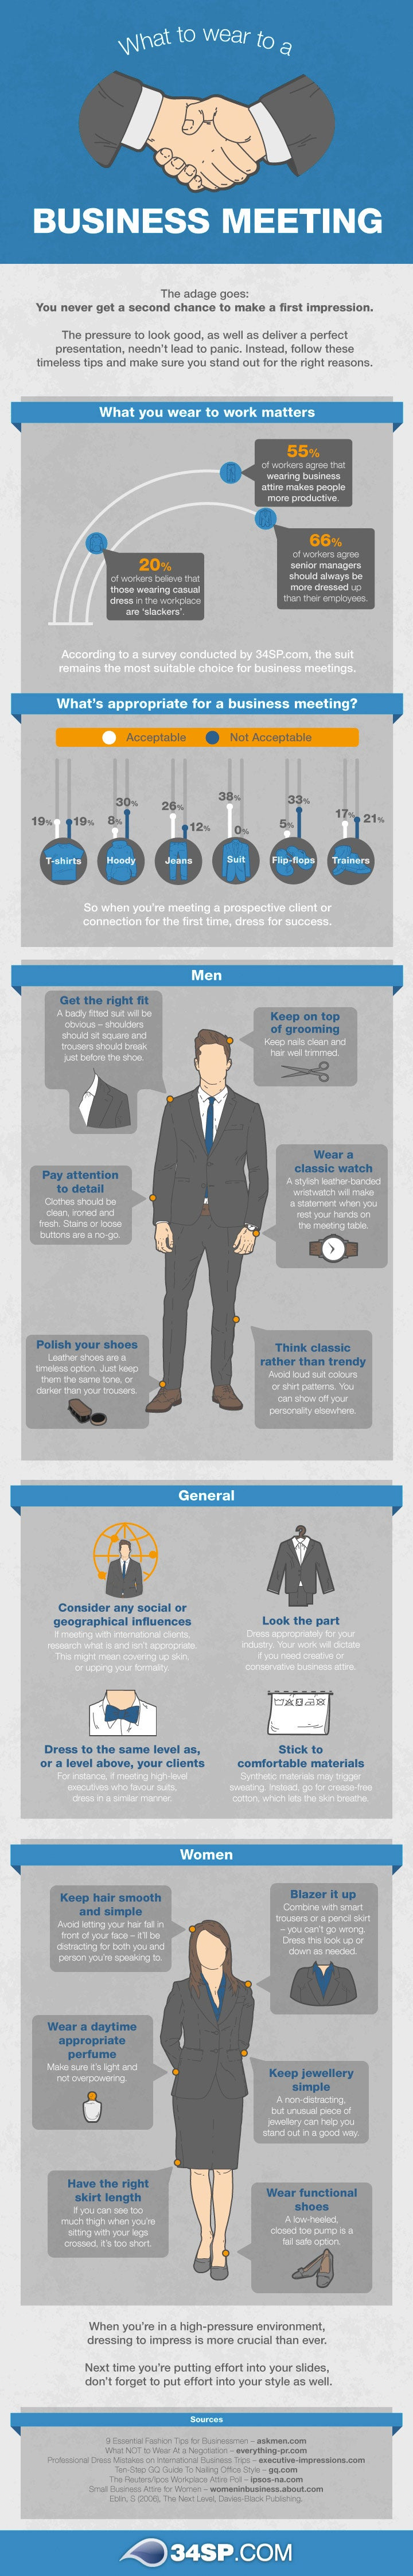 How to Dress for a Business Meeting. Yes, Seriously. (Infographic)